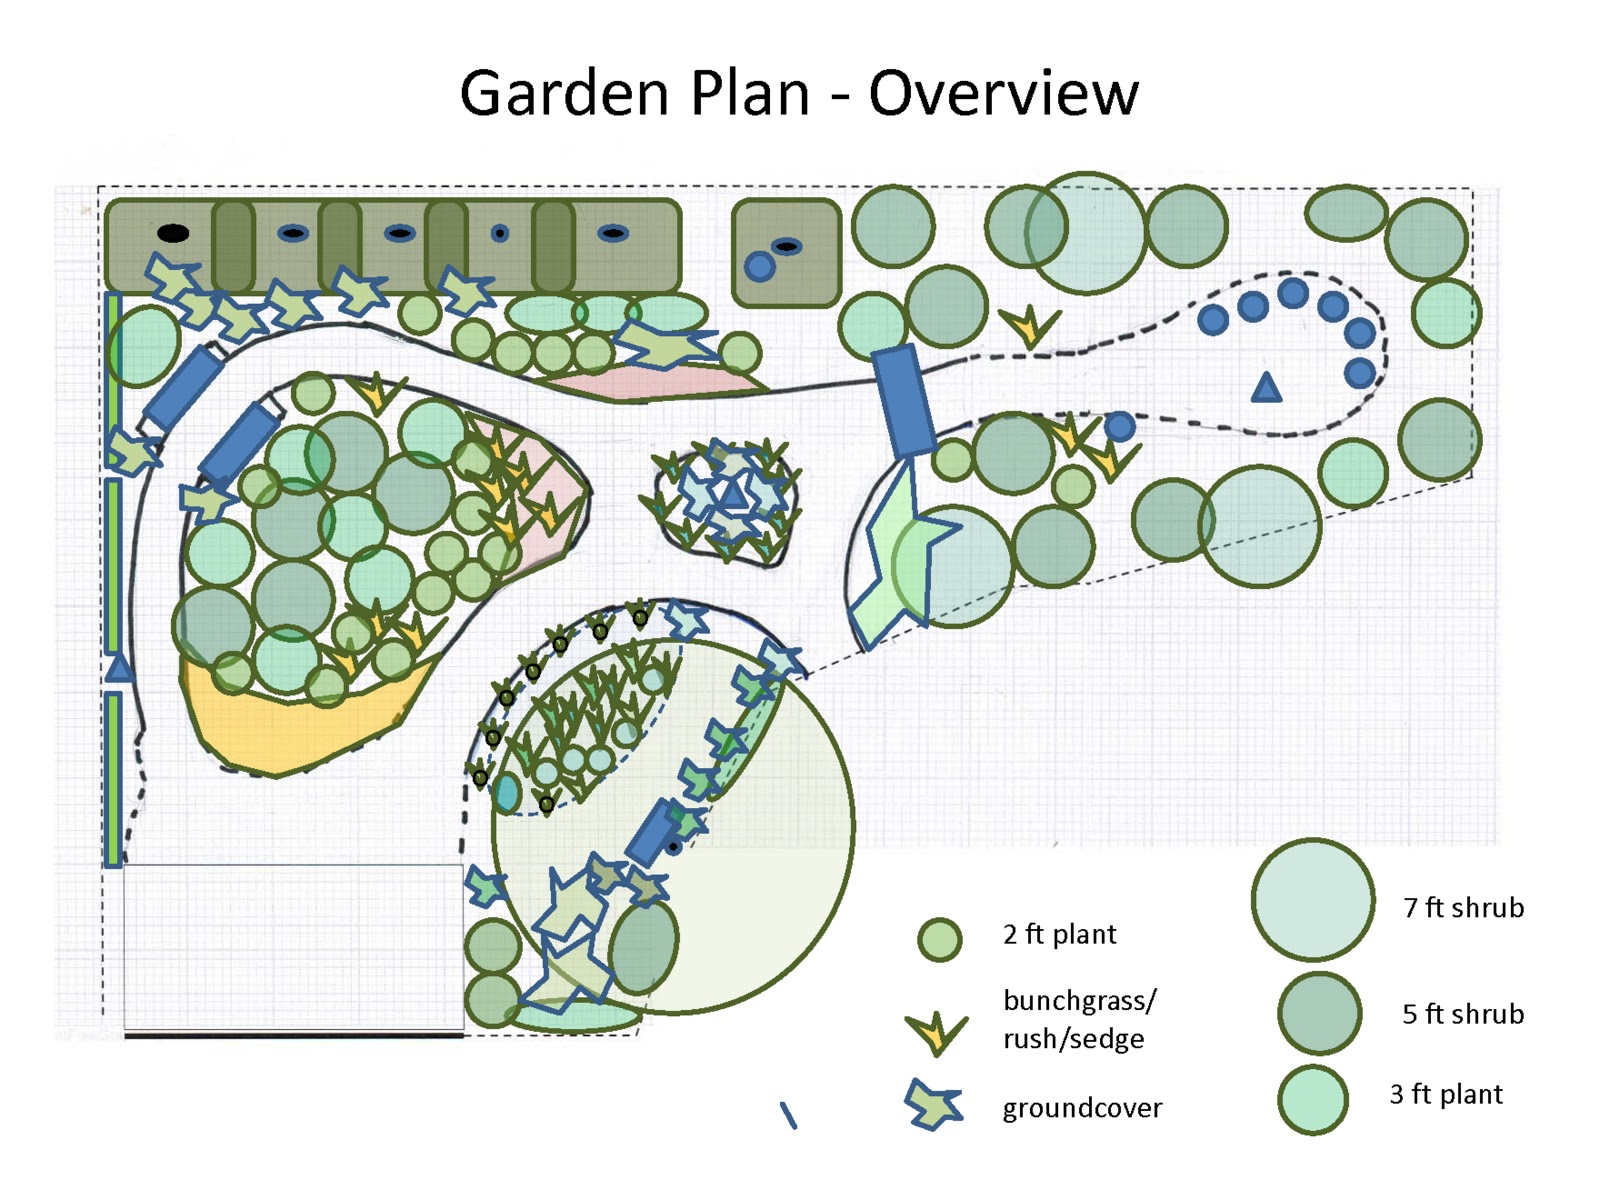 Waterwise Garden Design mother nature's backyard - a water-wise garden: garden plan